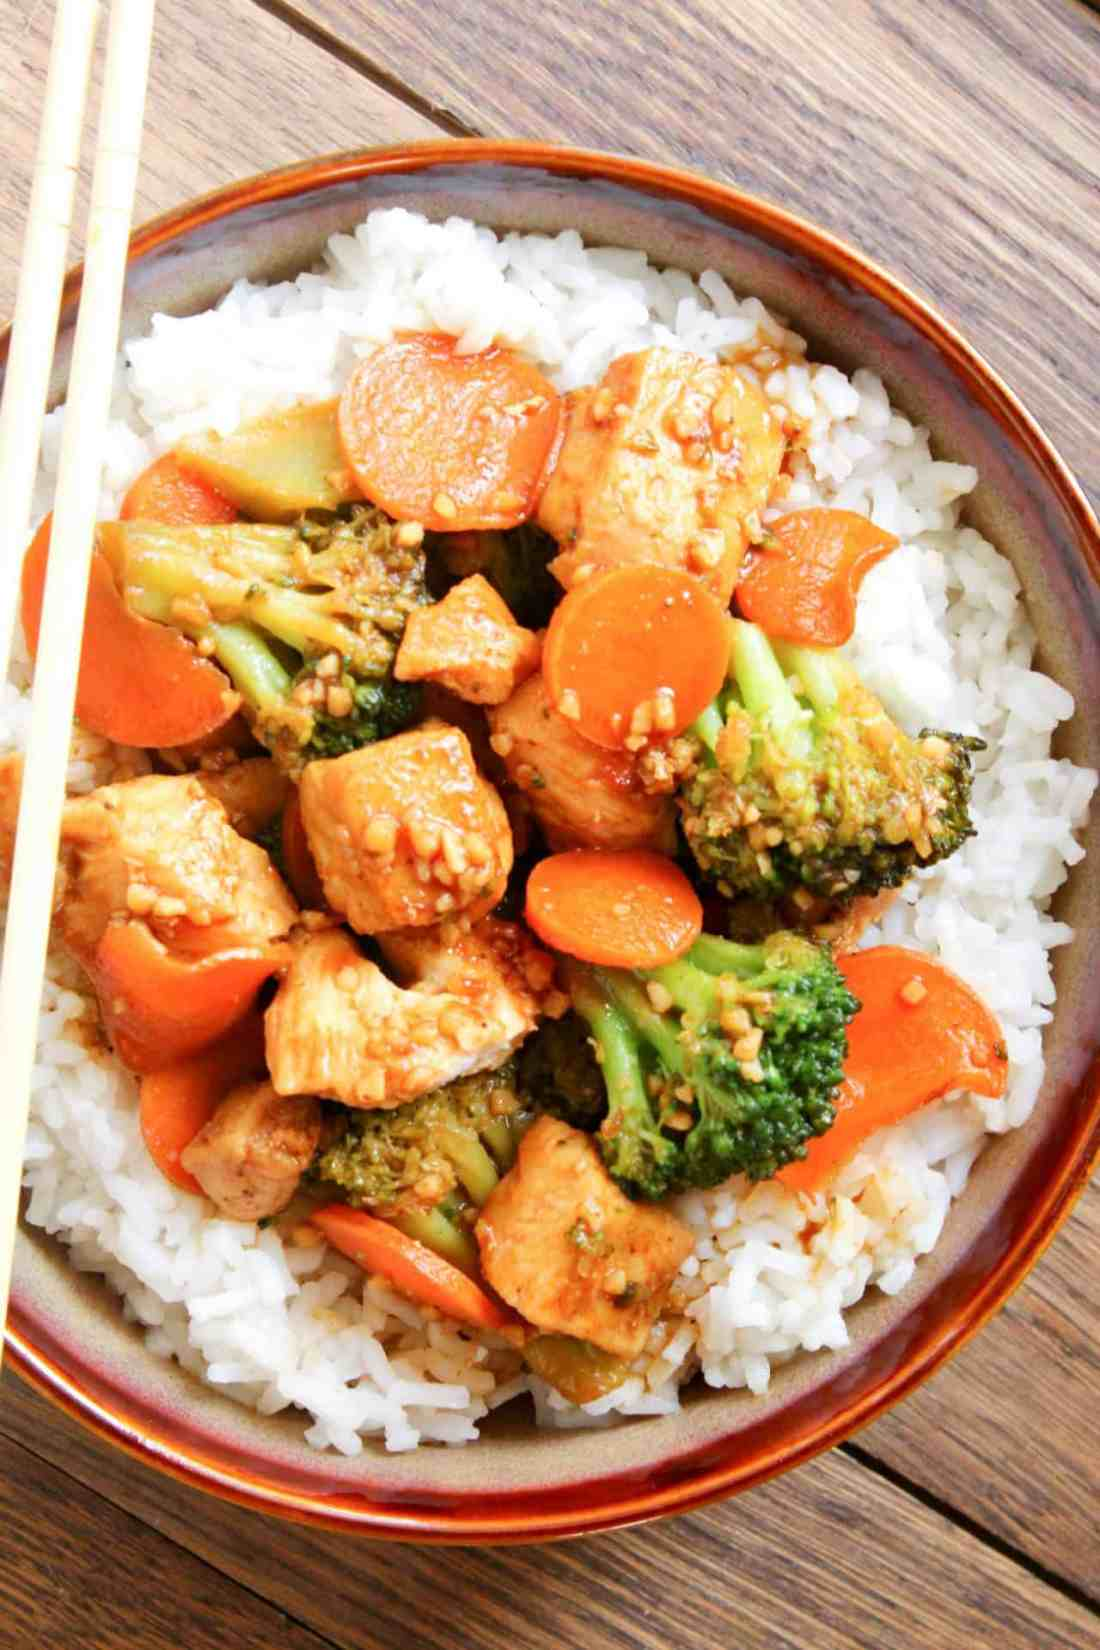 honey garlic chicken with broccoli and carrots on a bed of rice on a red bowl